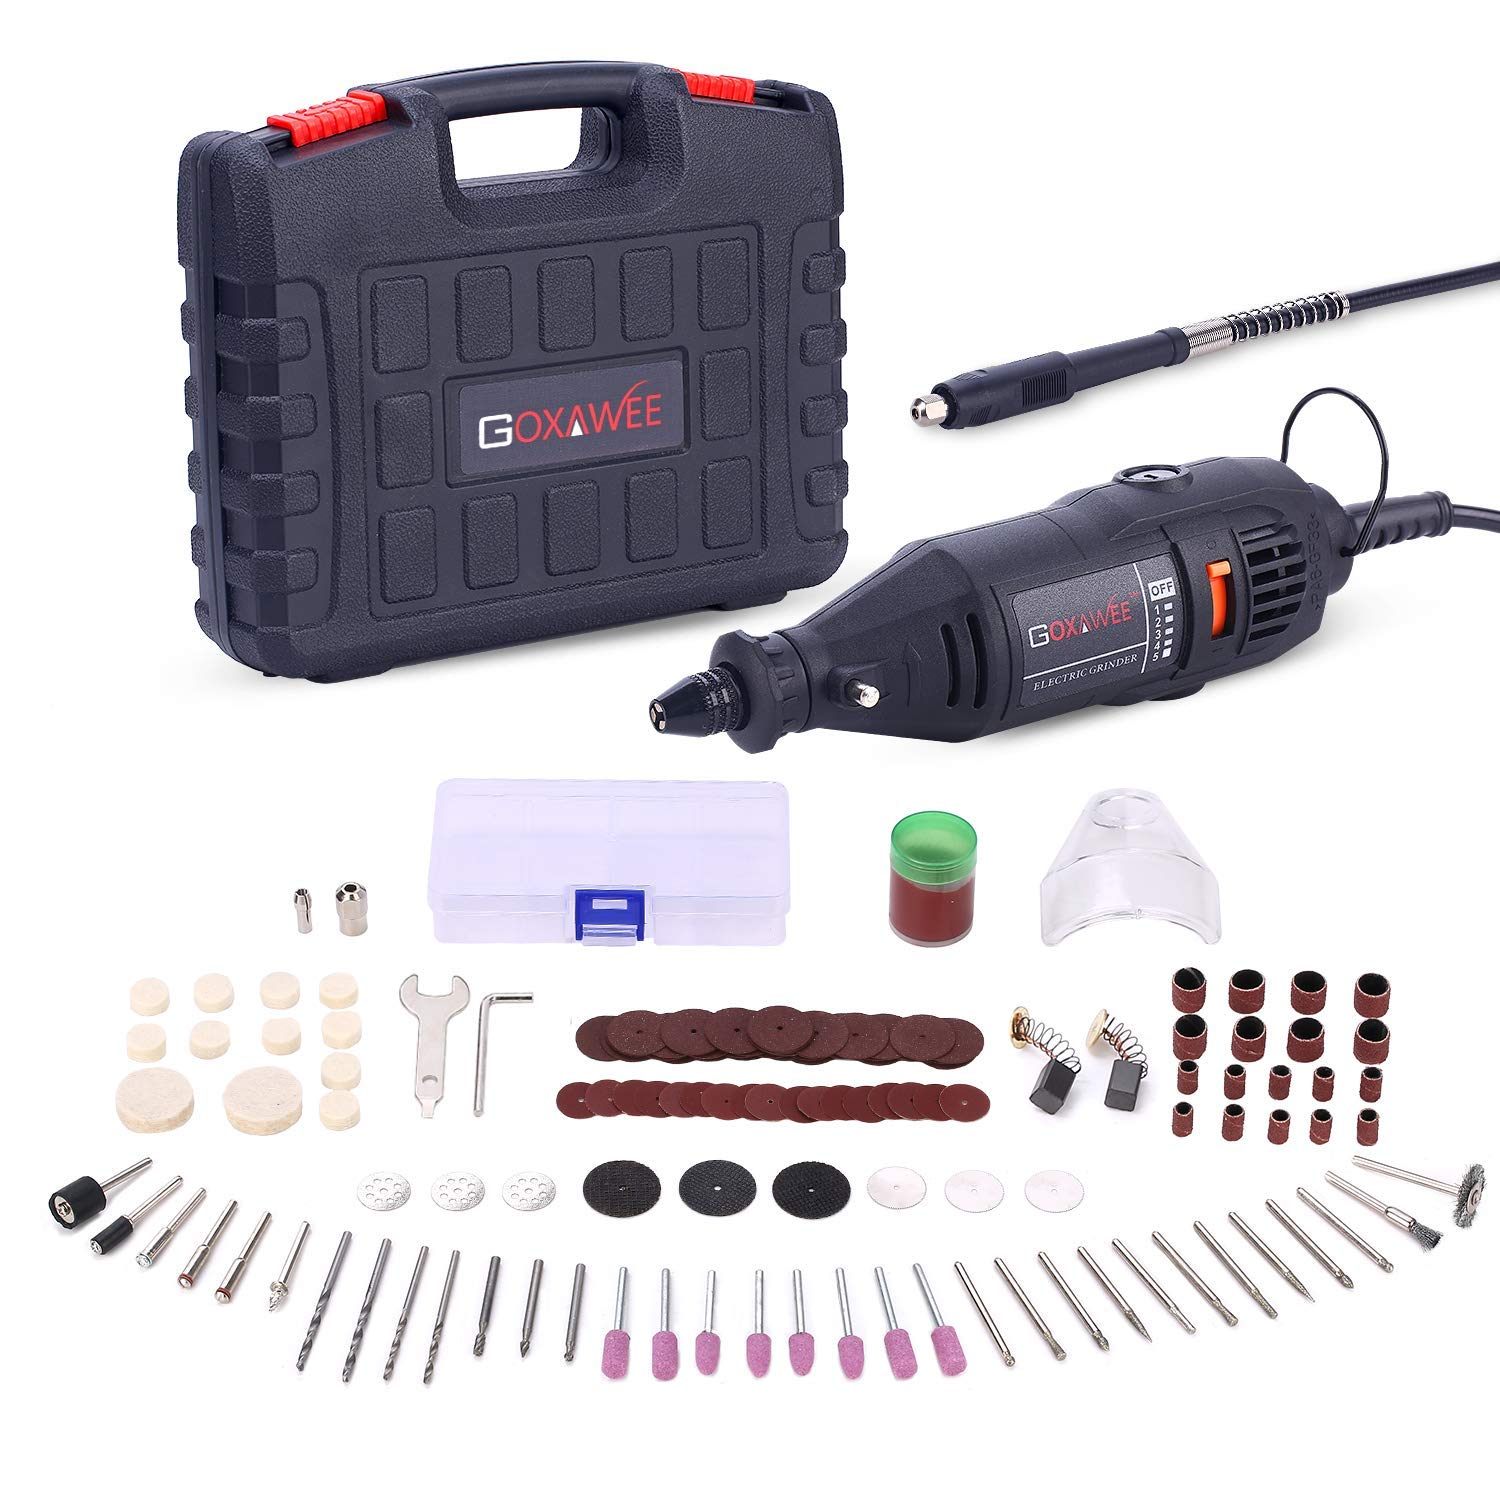 GOXAWEE Tool with 140pcs Accessories